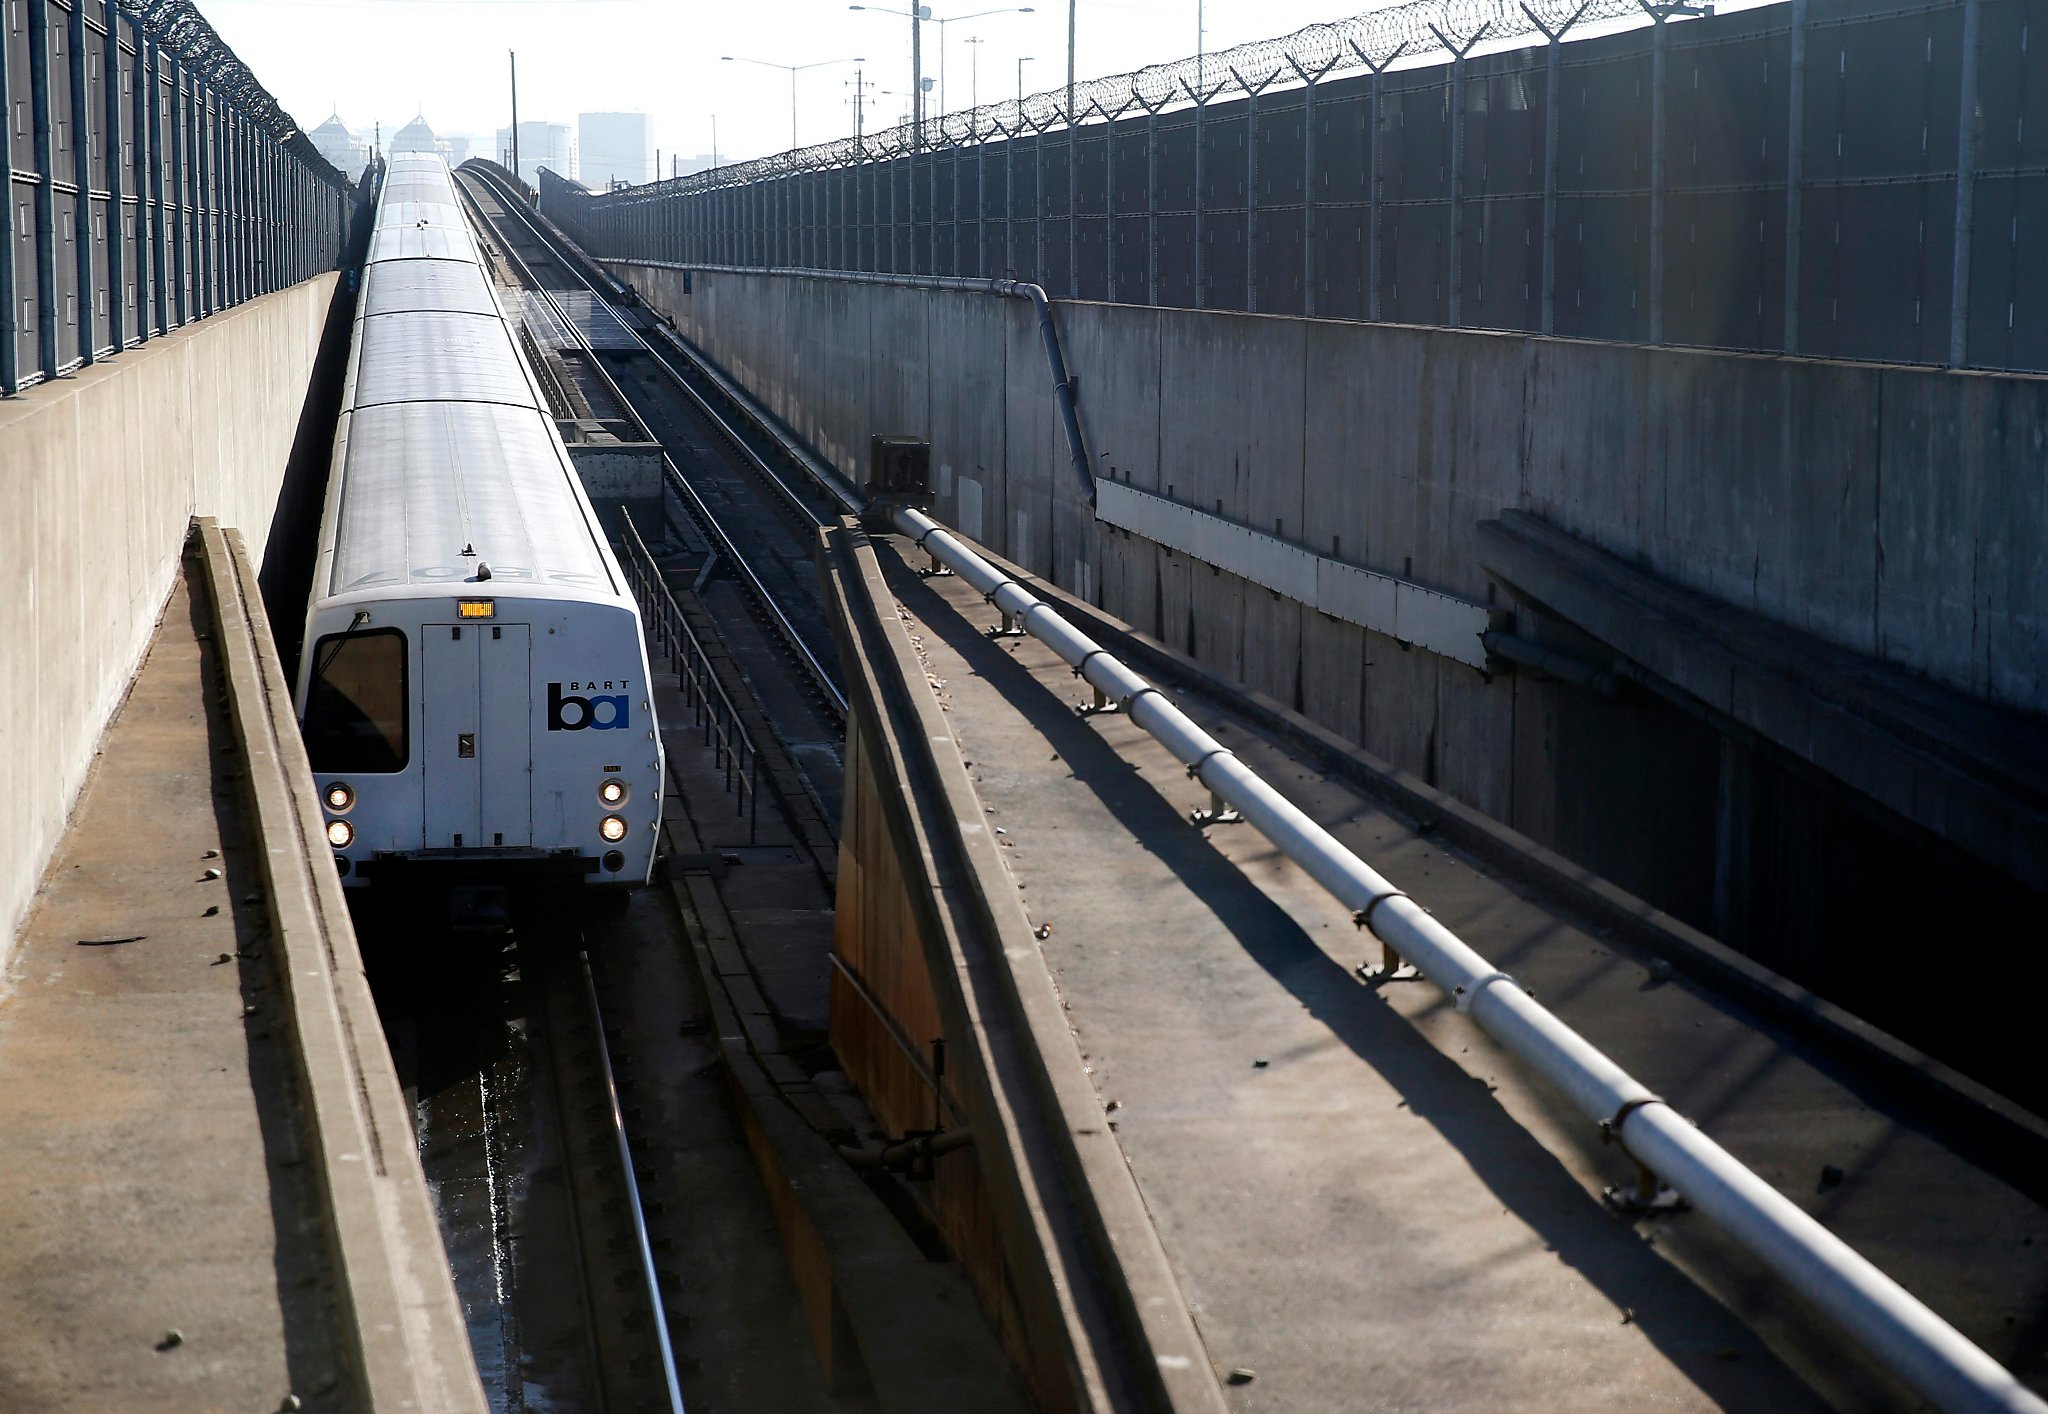 Buses may replace BART's early morning trains during Transbay Tube retrofit